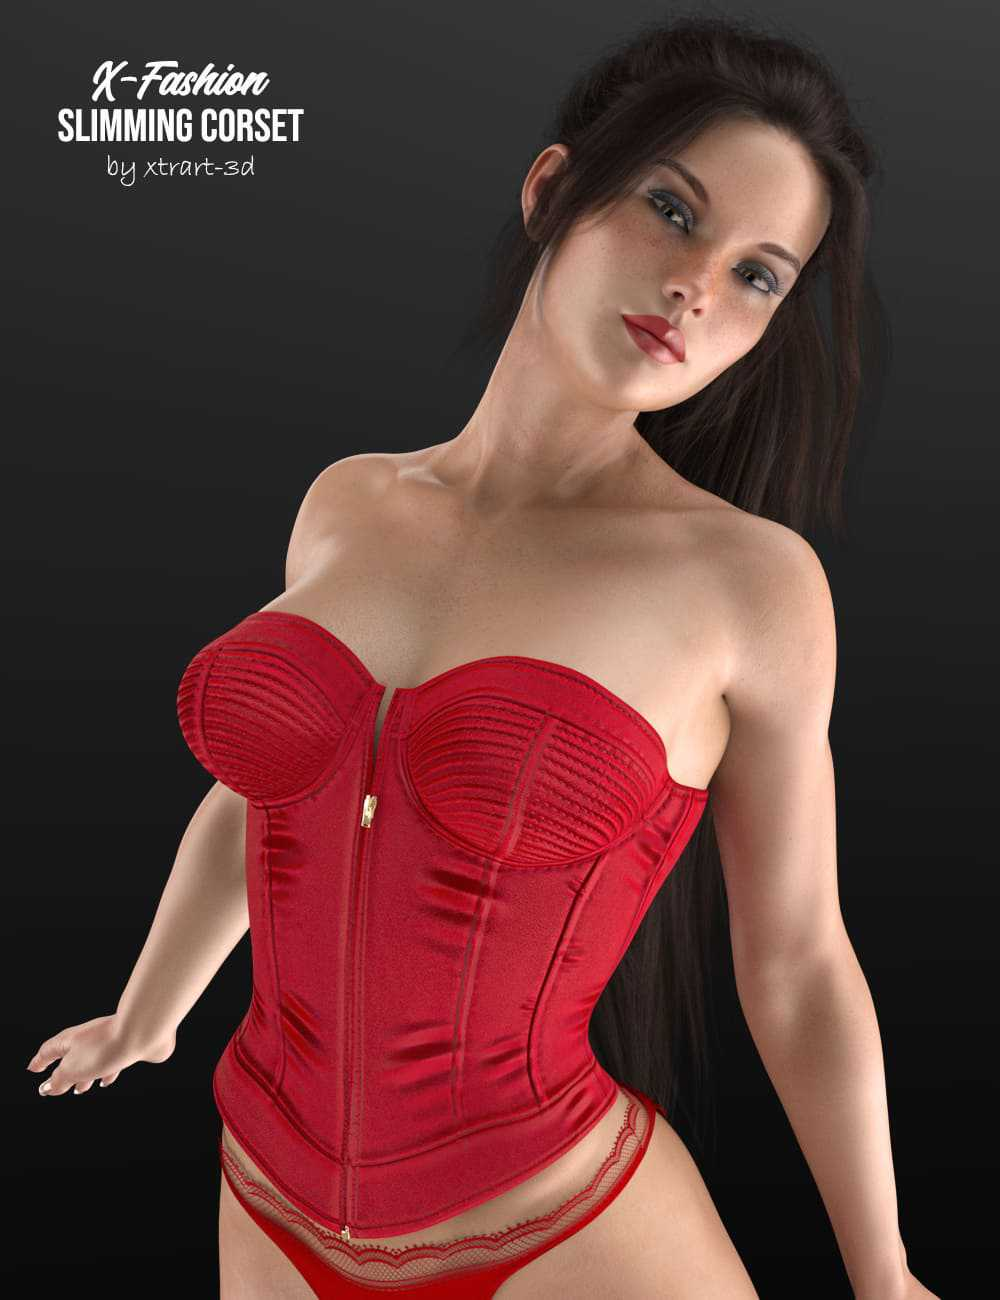 X-Fashion Slimming Corset for Genesis 8 Female(s)